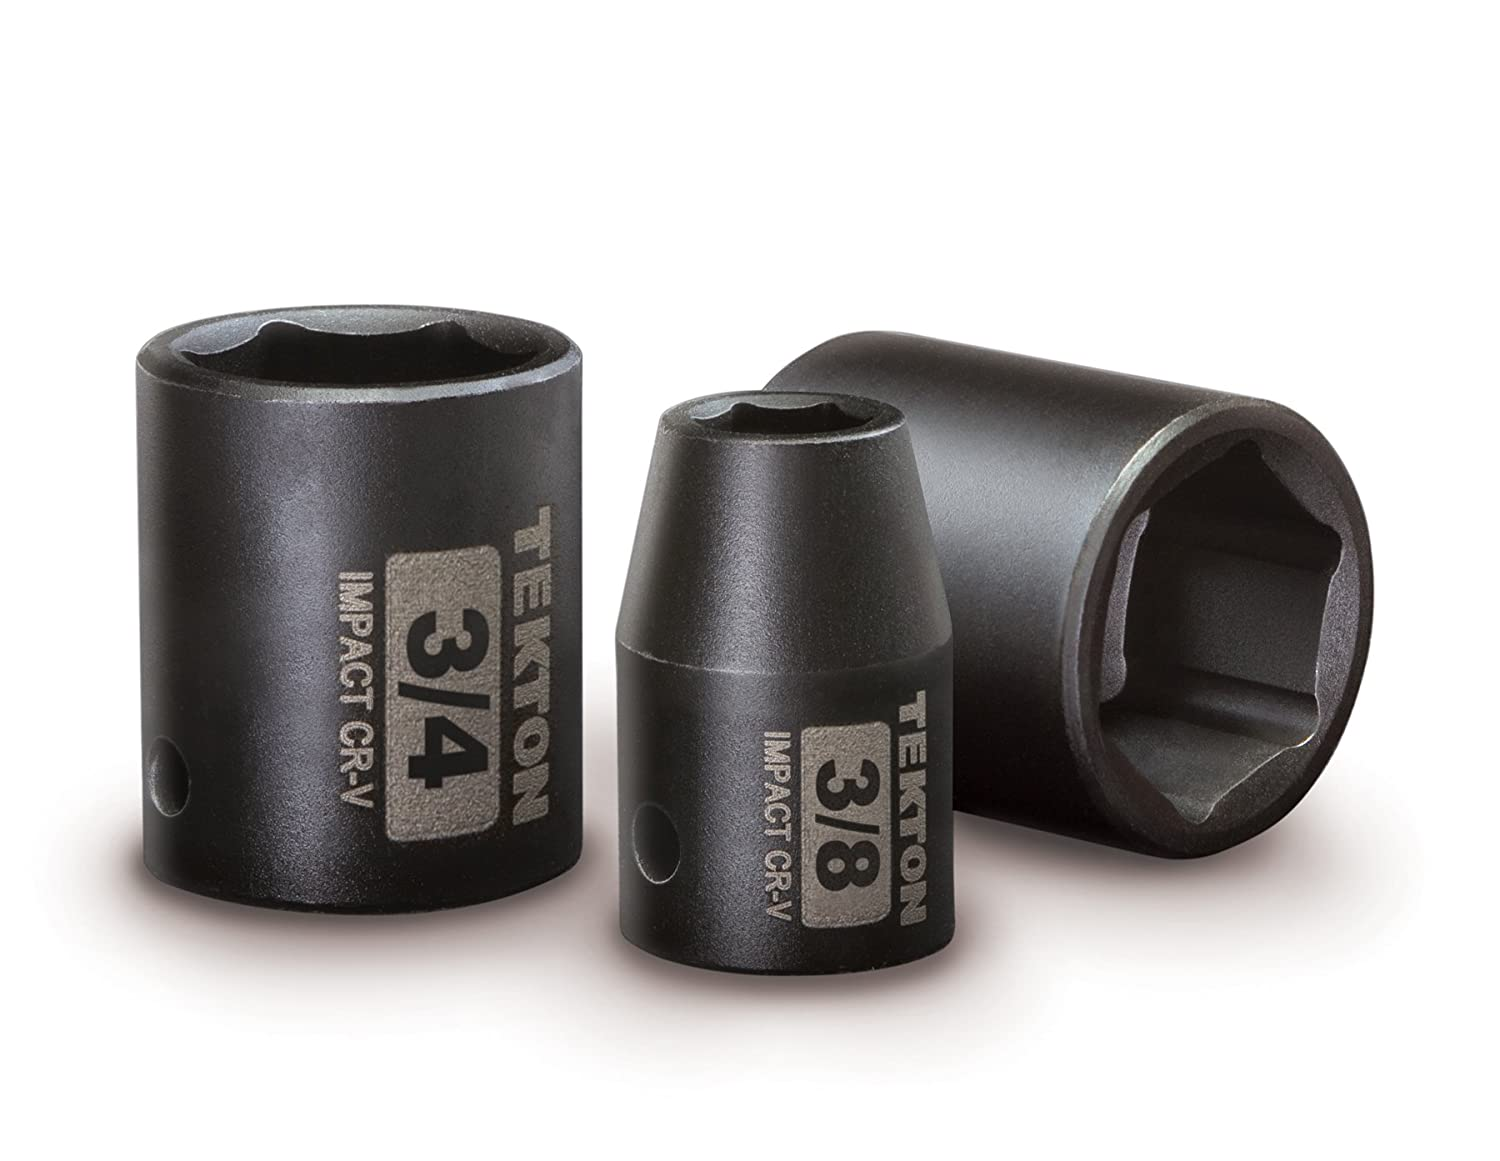 12-piece 3//8 in tekton drive 5//16-1 in 6-point shallow impact socket set